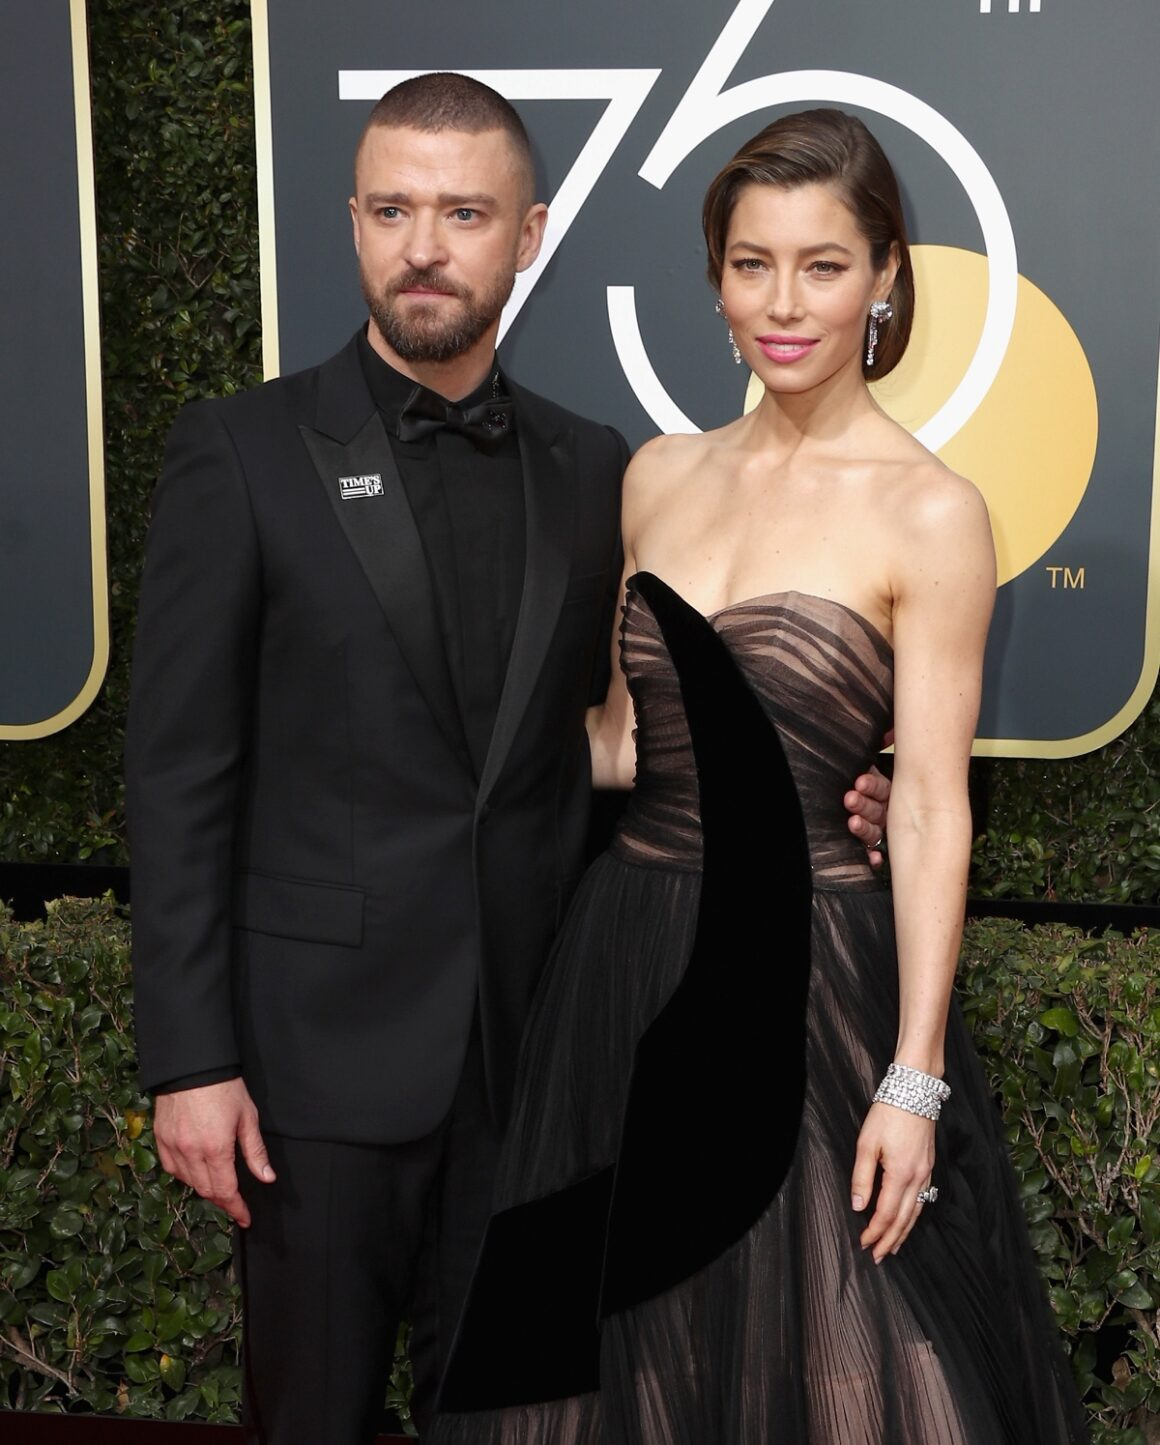 Justin Timberlake and Jessica Biel 75th Annual Golden Globe Awards - Arrivals